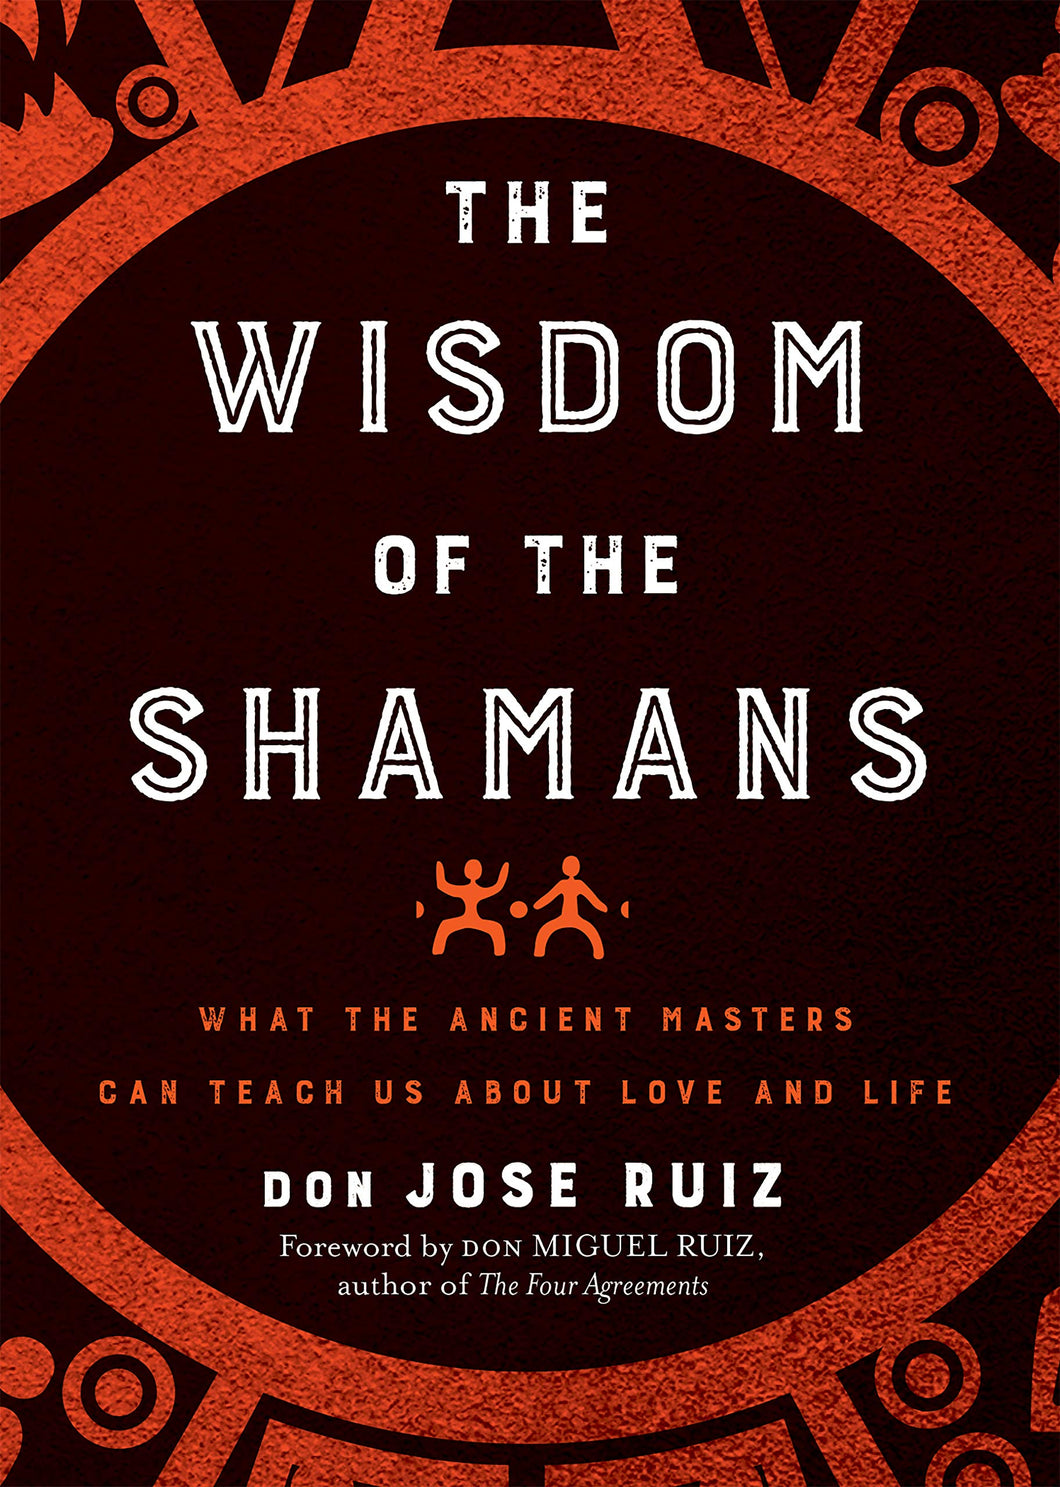 Wisdom of the Shamans: What the Ancient Masters Can Teach Us about Love and Life by Don Jose Ruiz